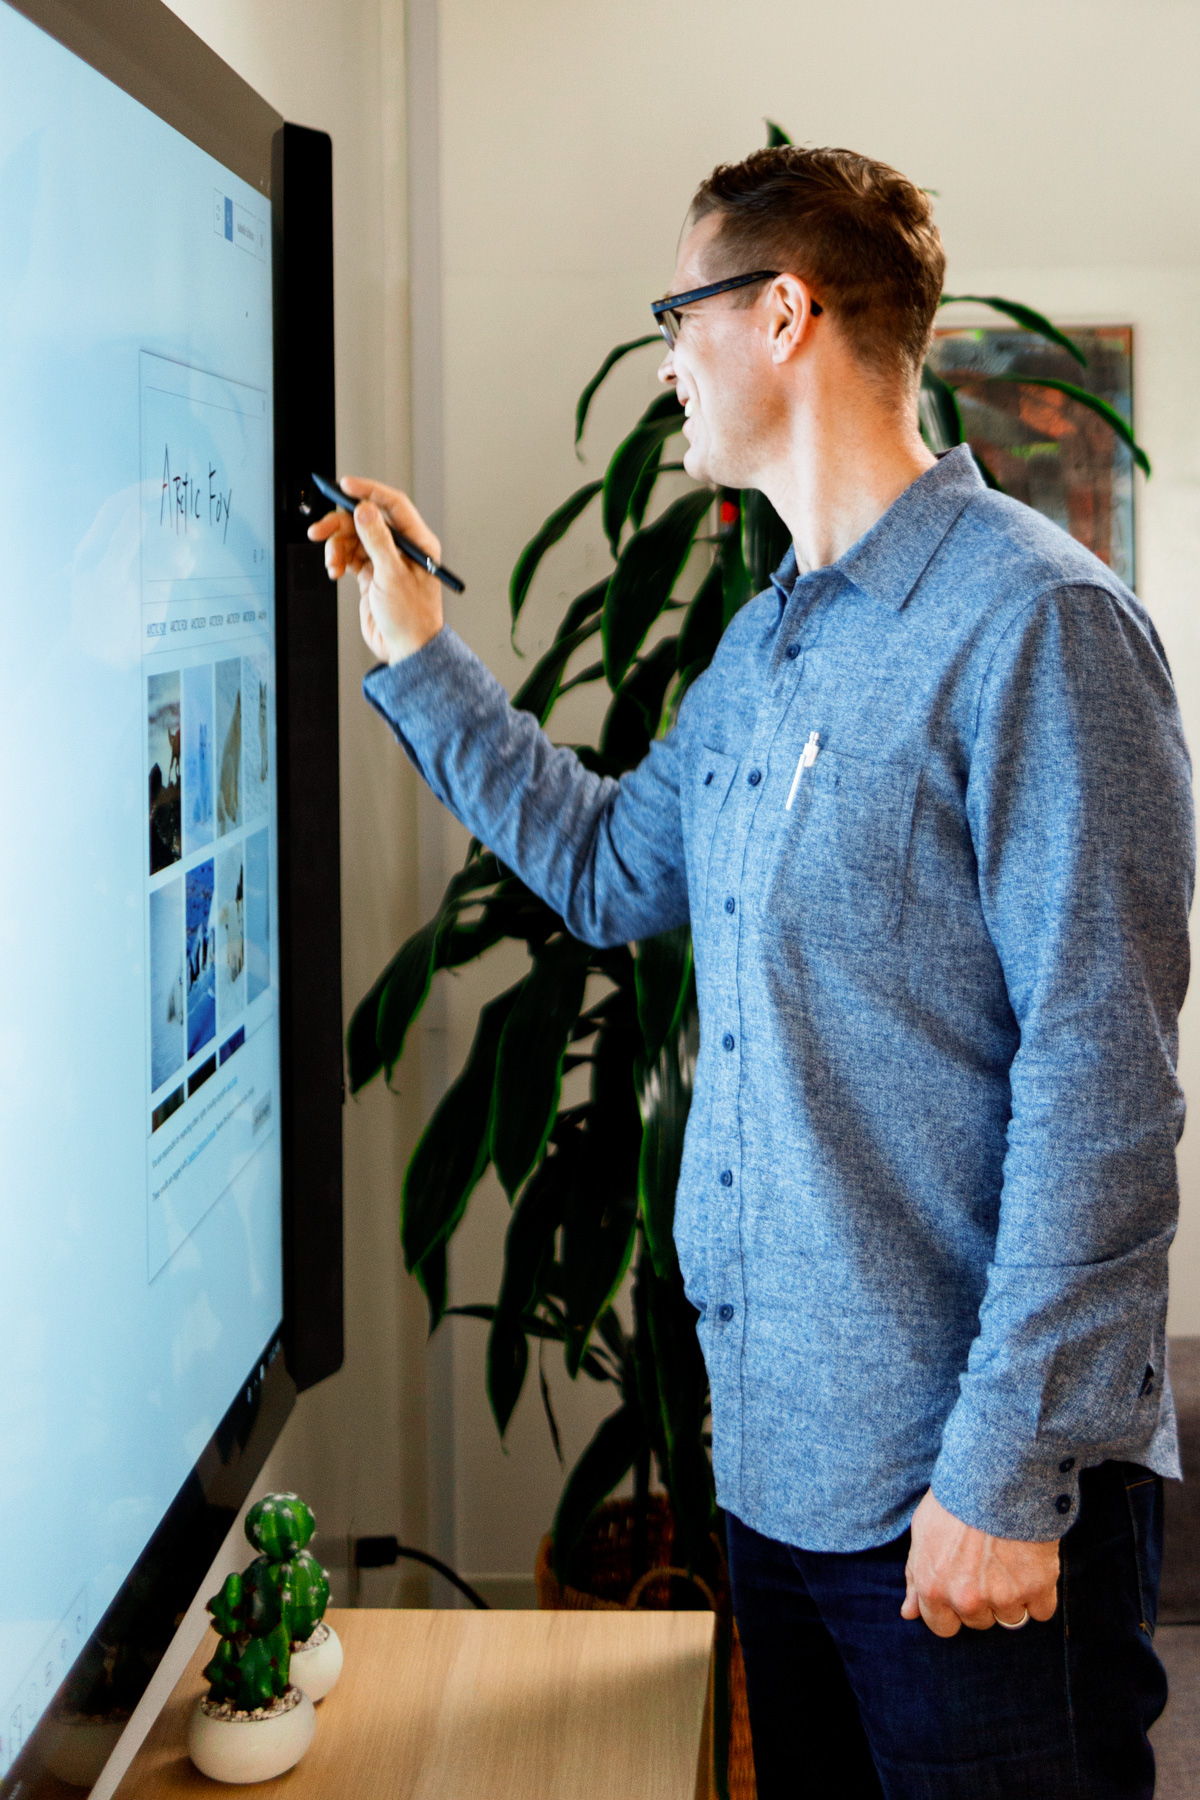 MSFT-WHITEBOARD-ROB-KALMBACH-75-Edit.jpg